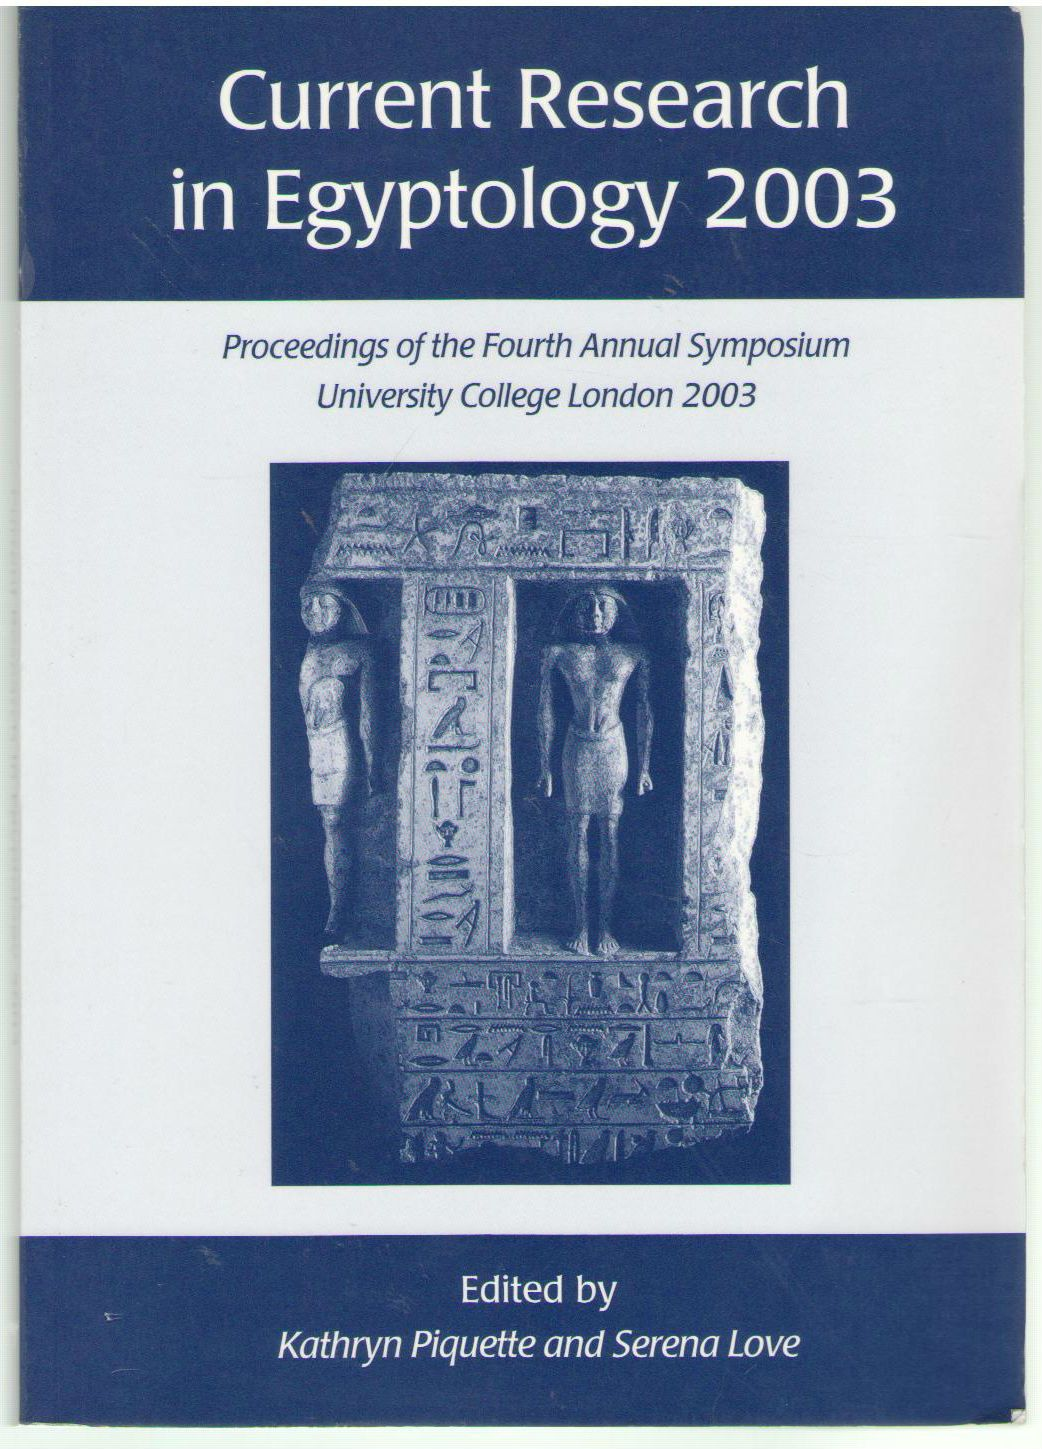 Current Research in Egyptology 2003: Proceedings of the Fourth Annual Symposium, Piquette, Kathryn; Love, Serena